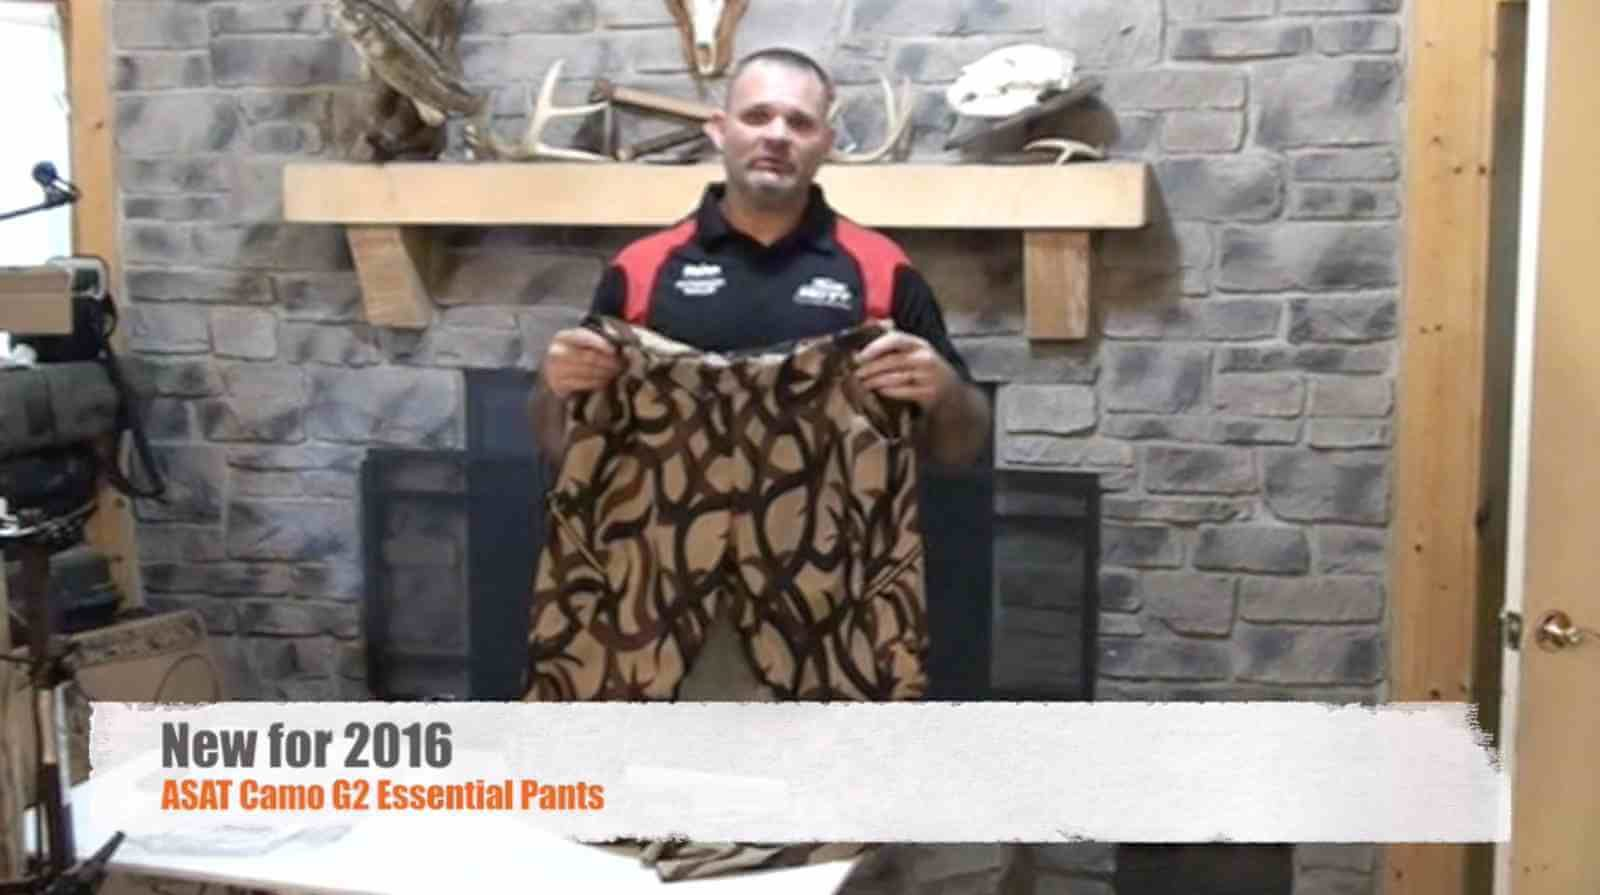 ASAT Camo G2 Essential Pants Introduction